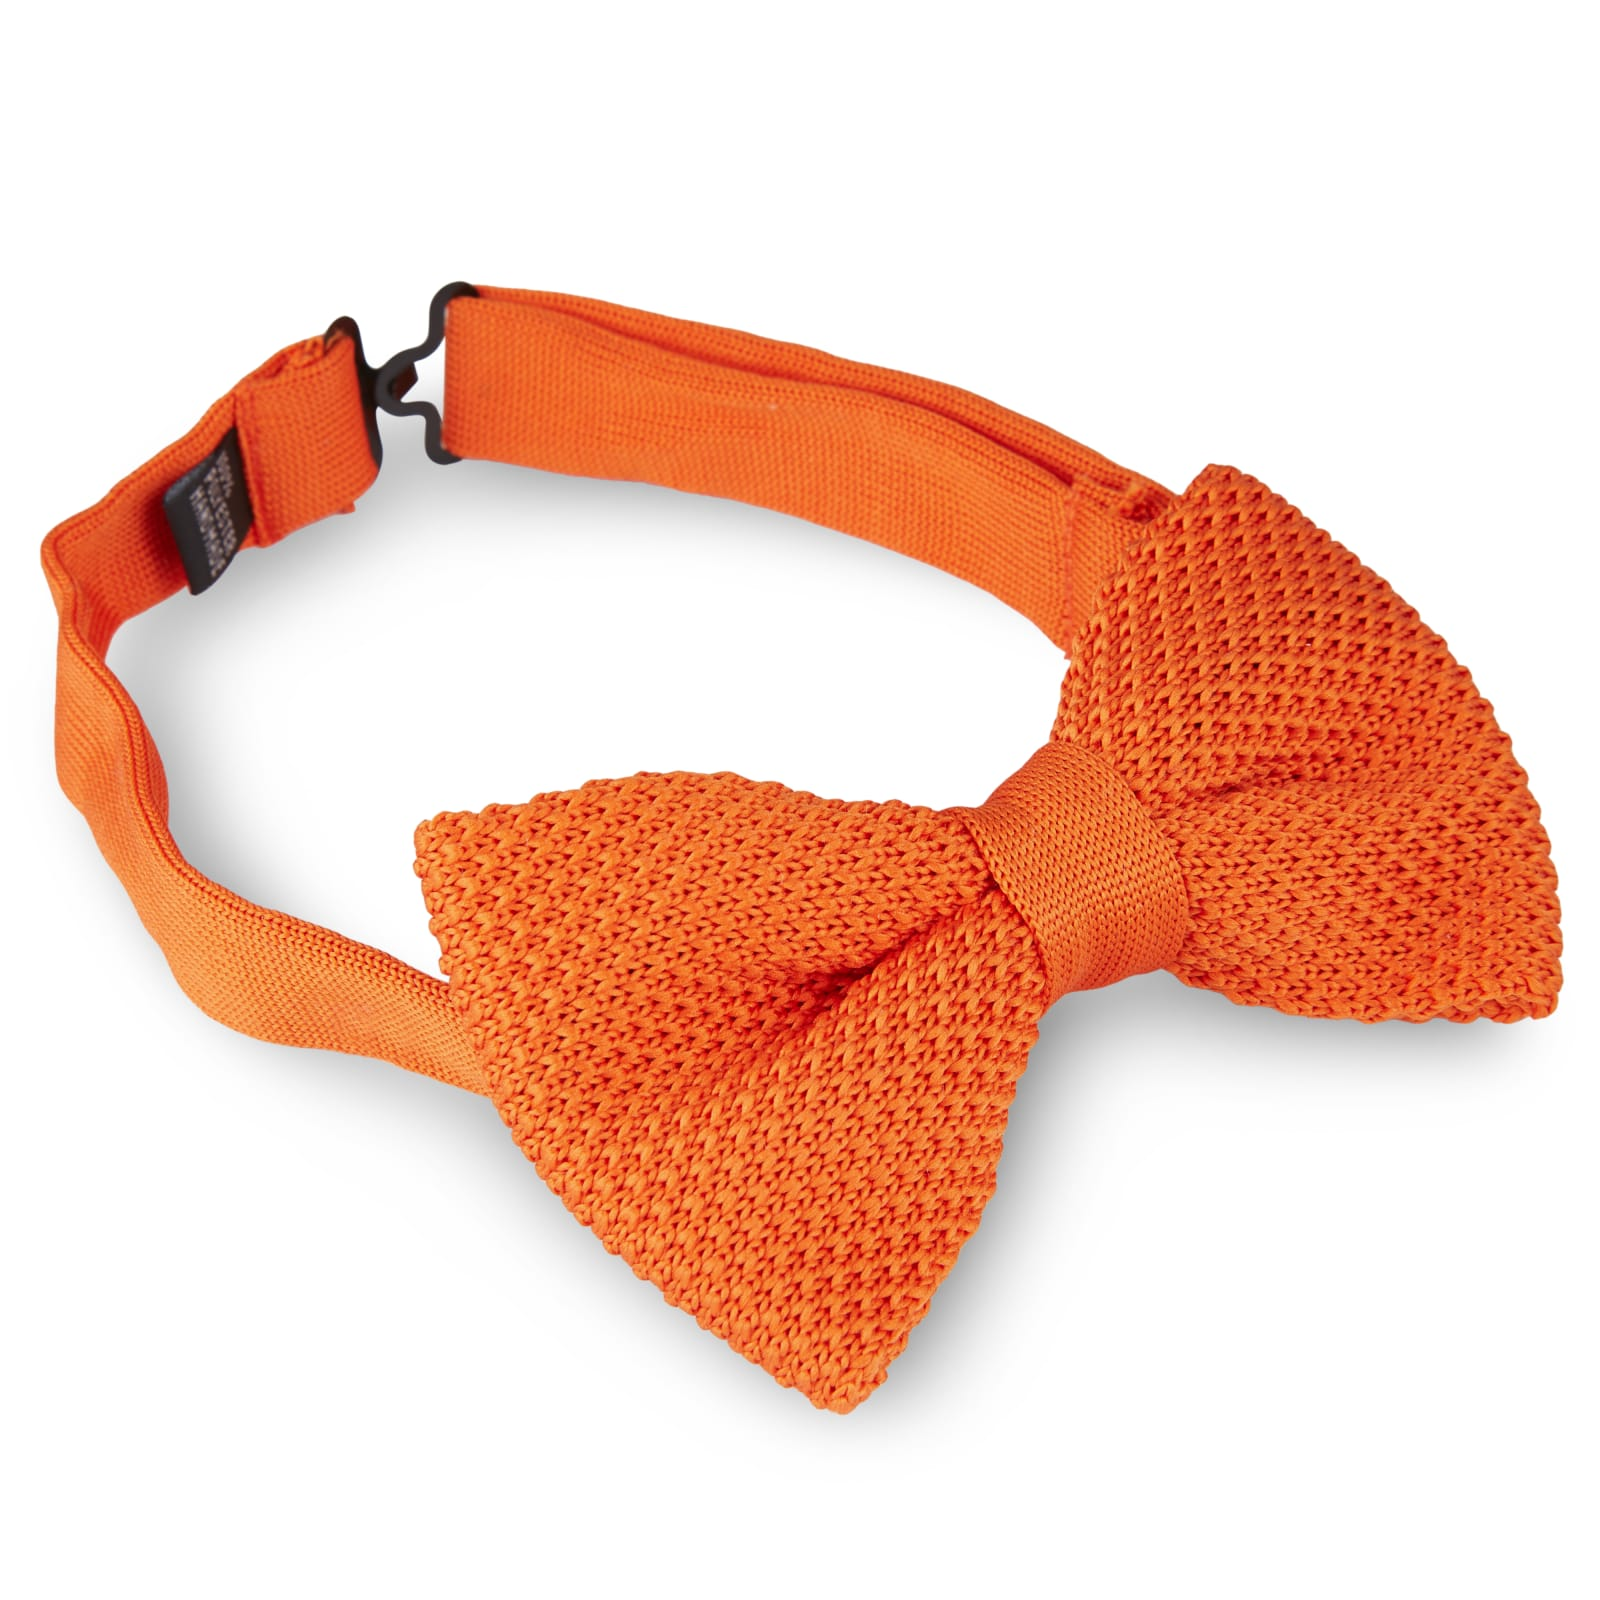 ORANGE/TERRACOTTA KNITTED BOW TIES